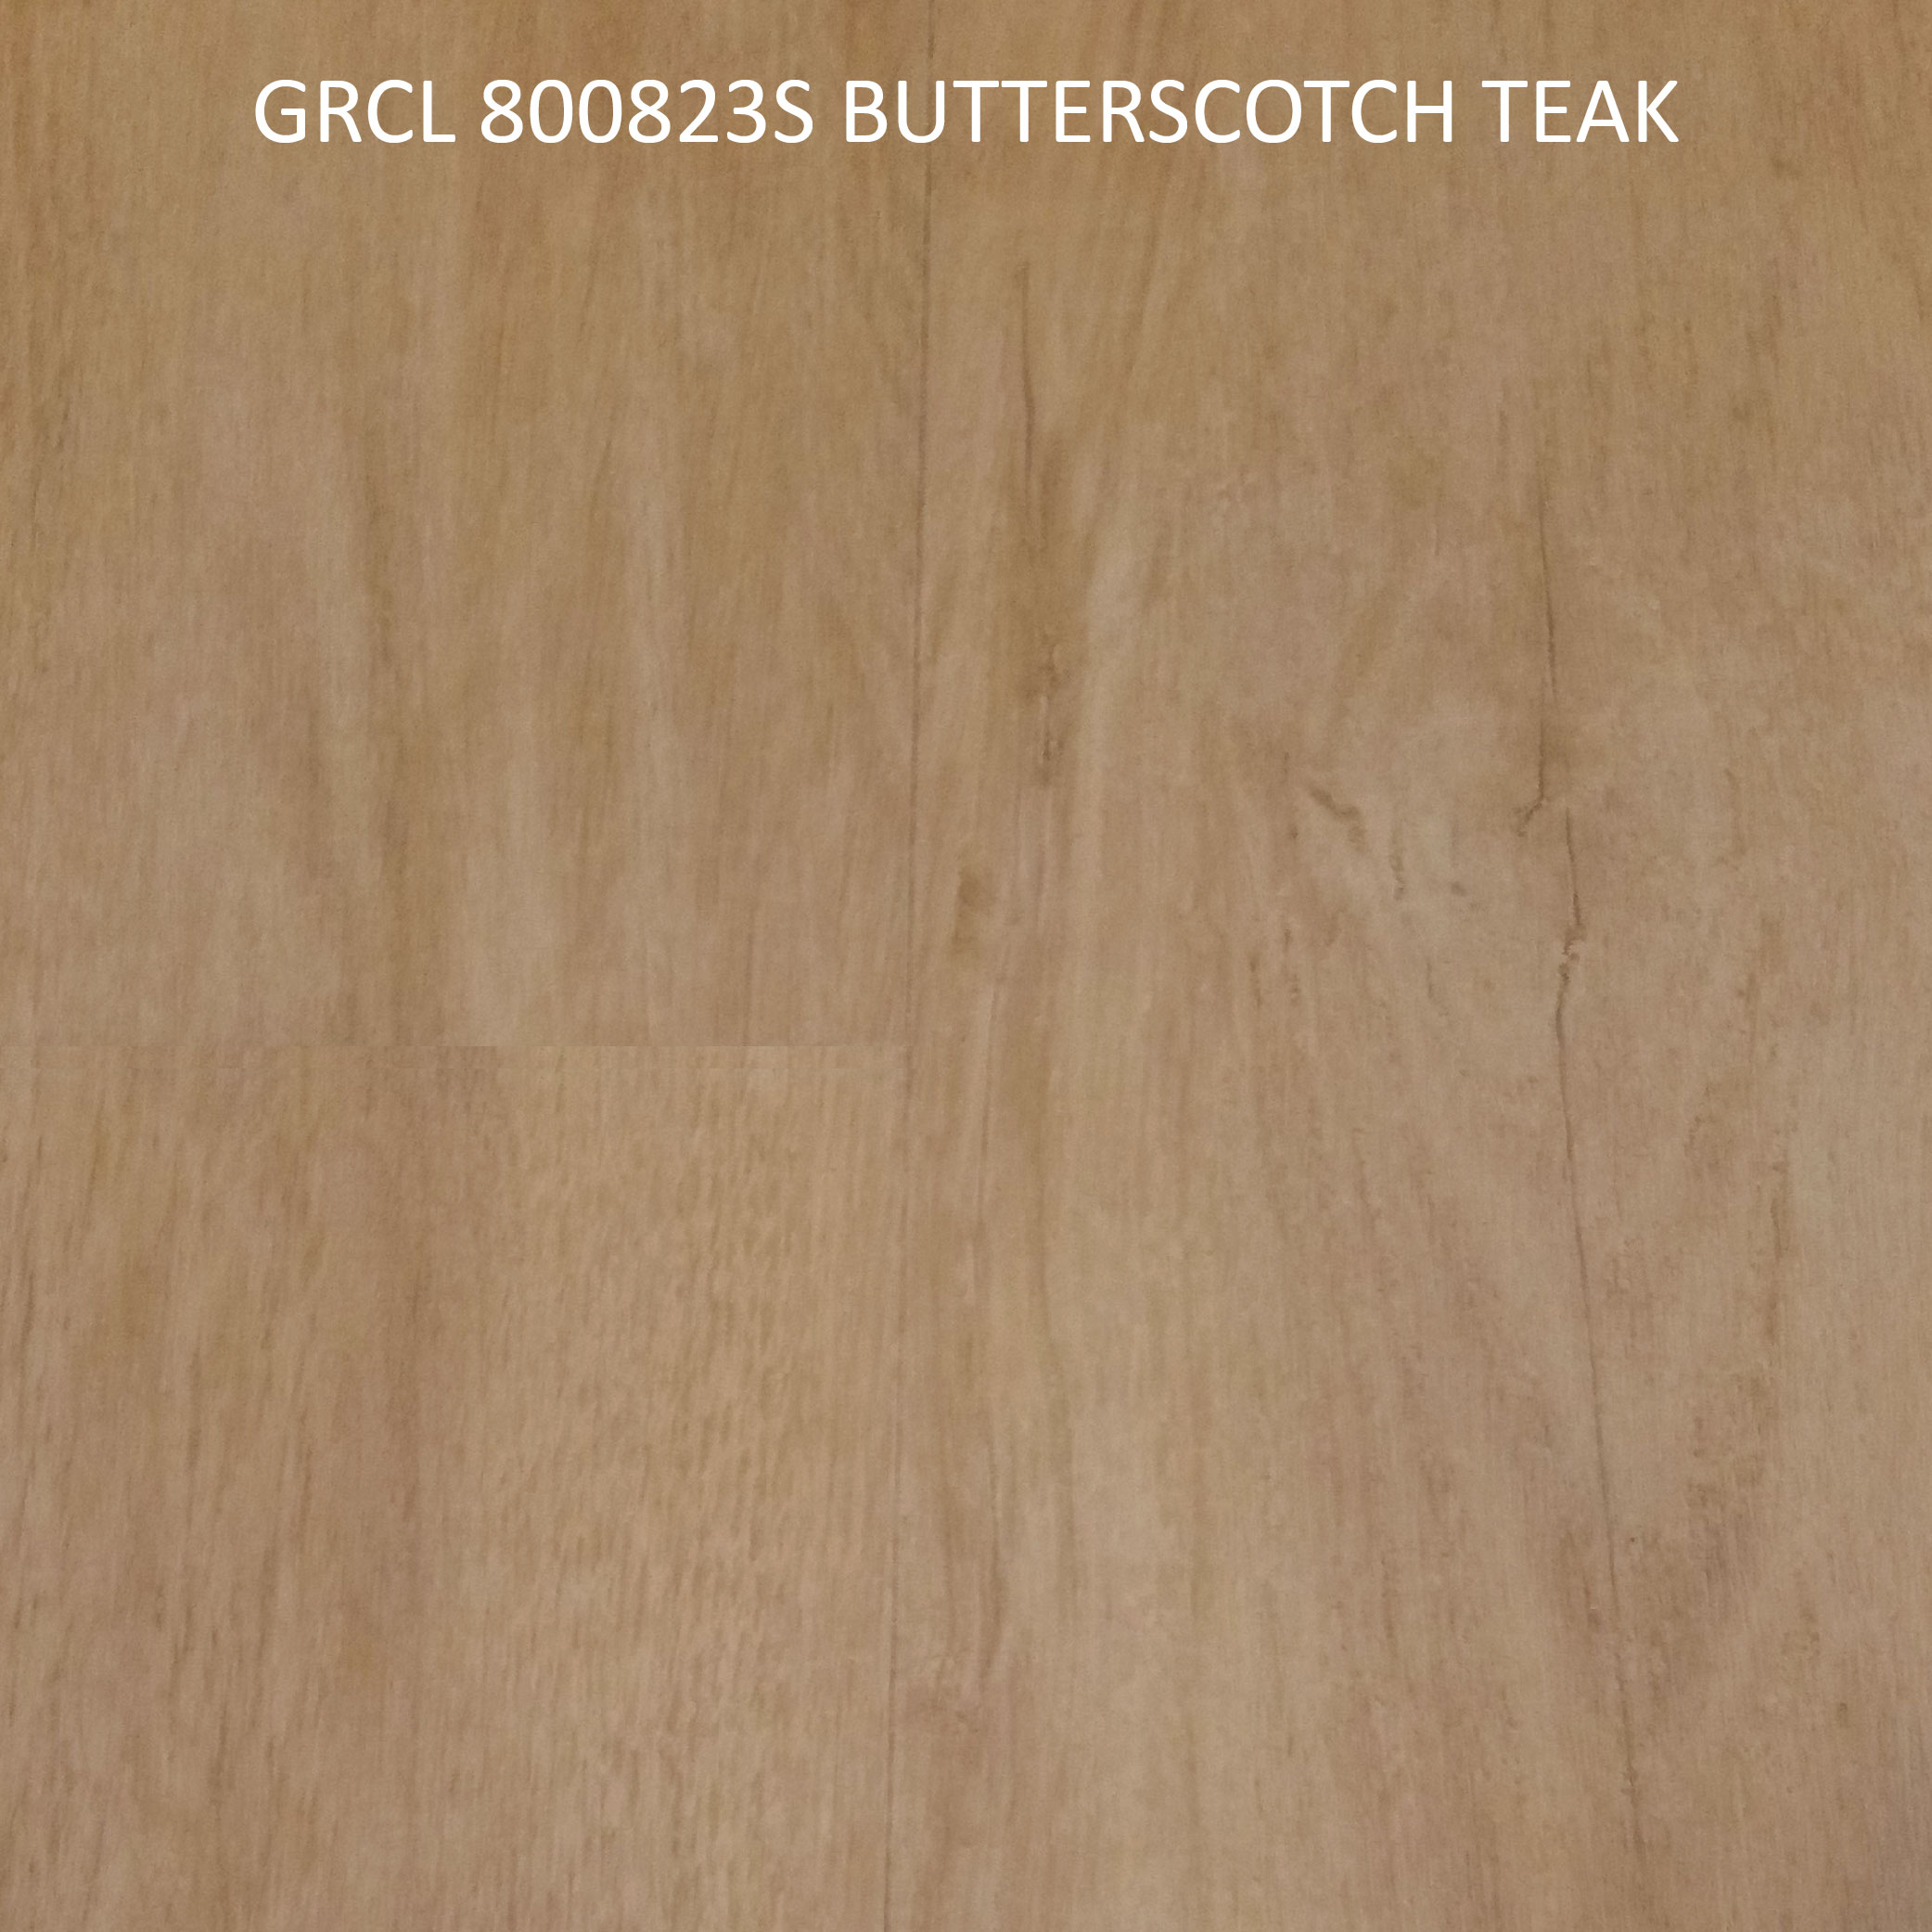 GRCL 800823S BUTTERSCOTCH TEAK